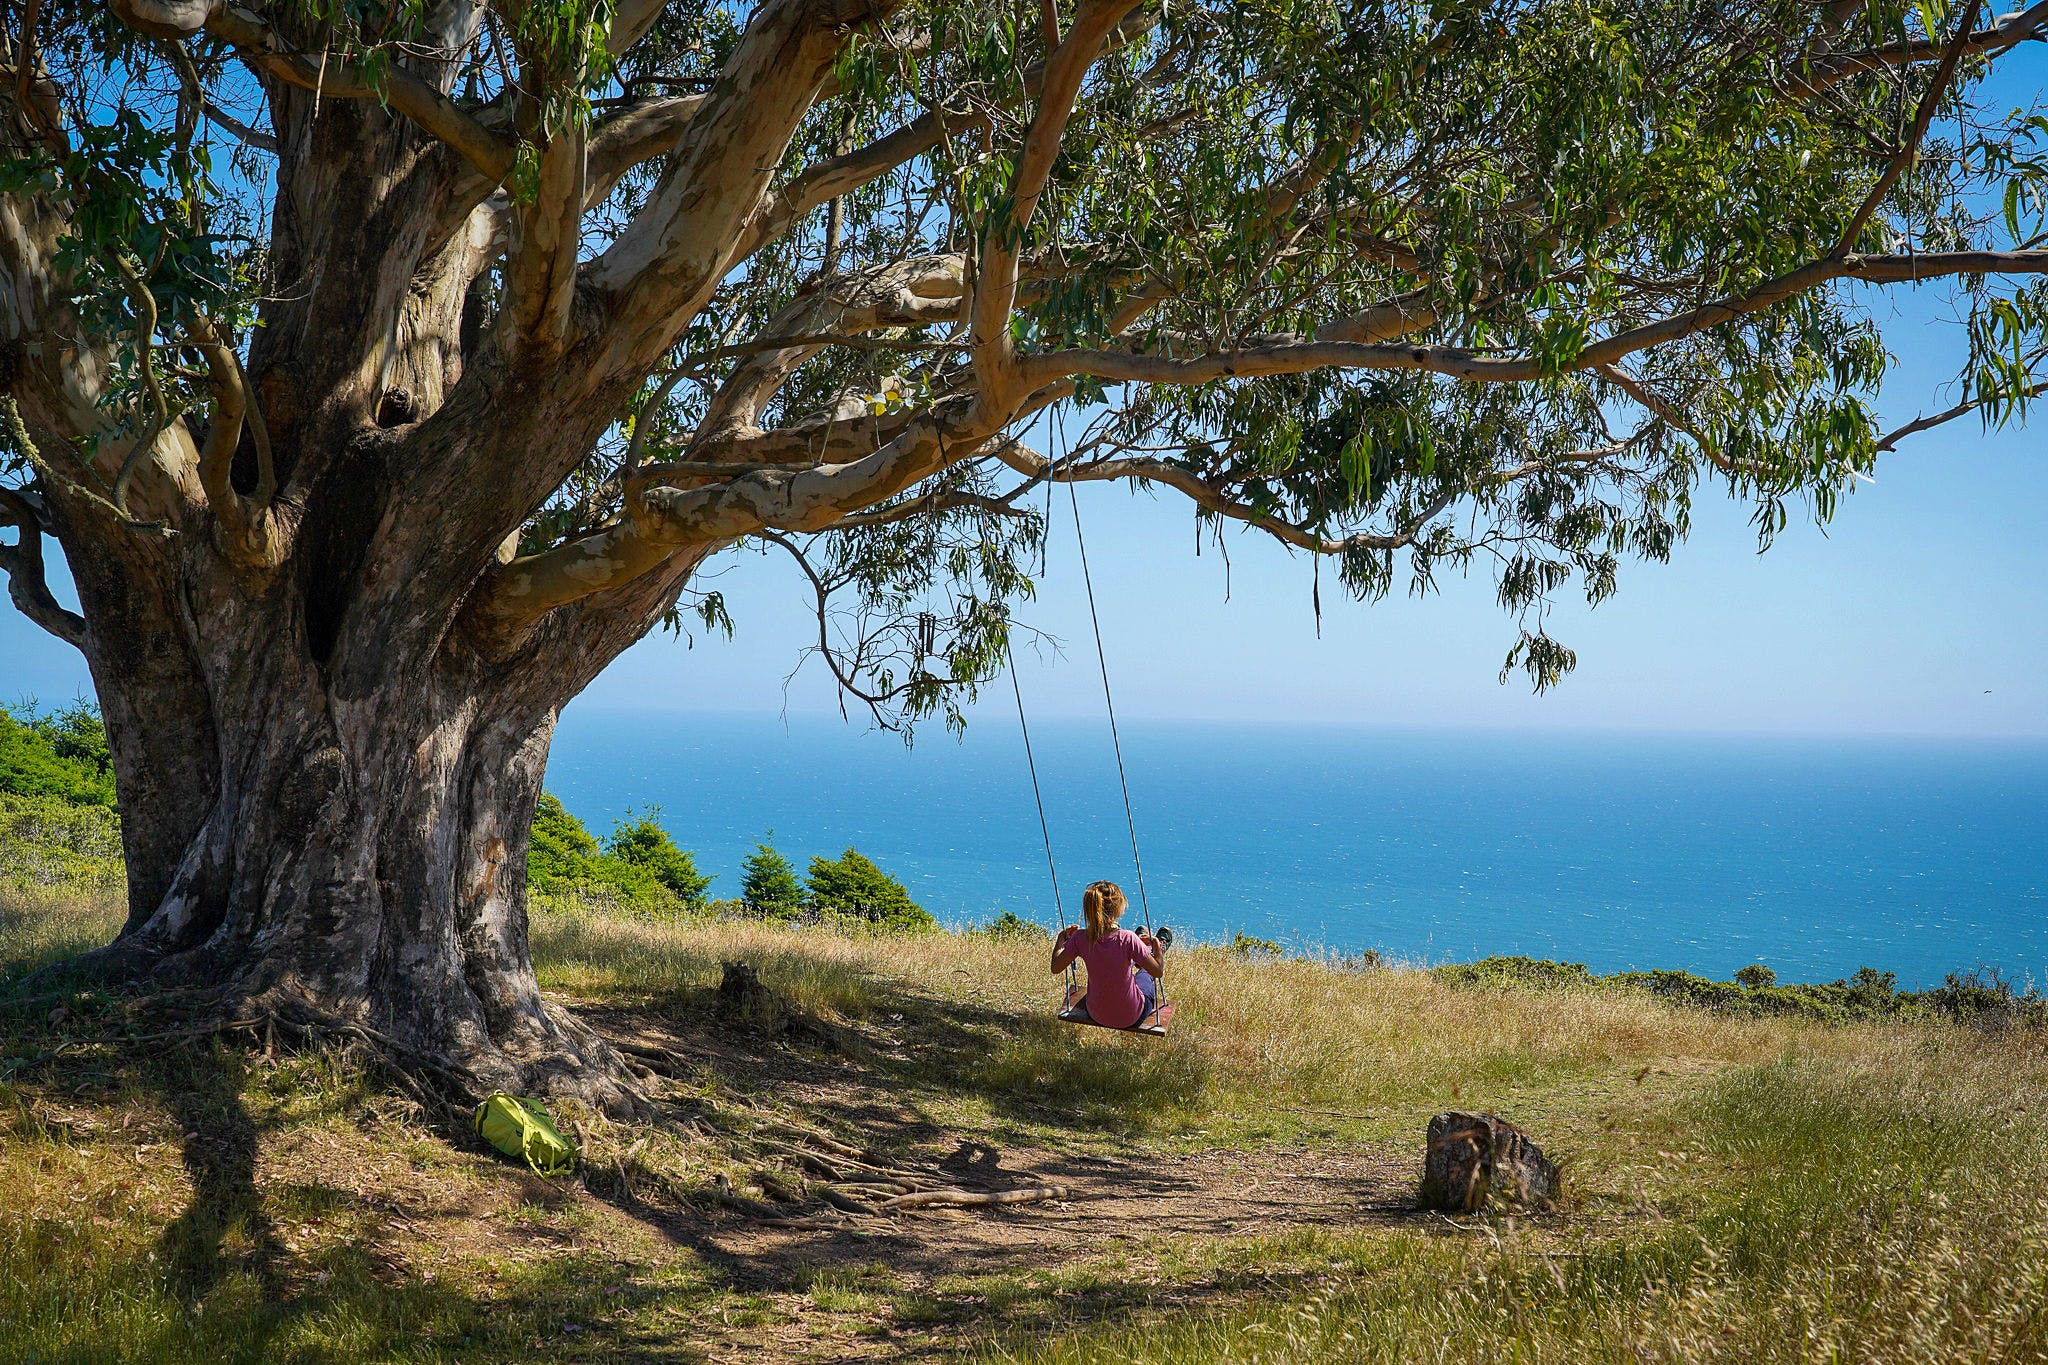 Woman on a tree swing overlooking the pacific